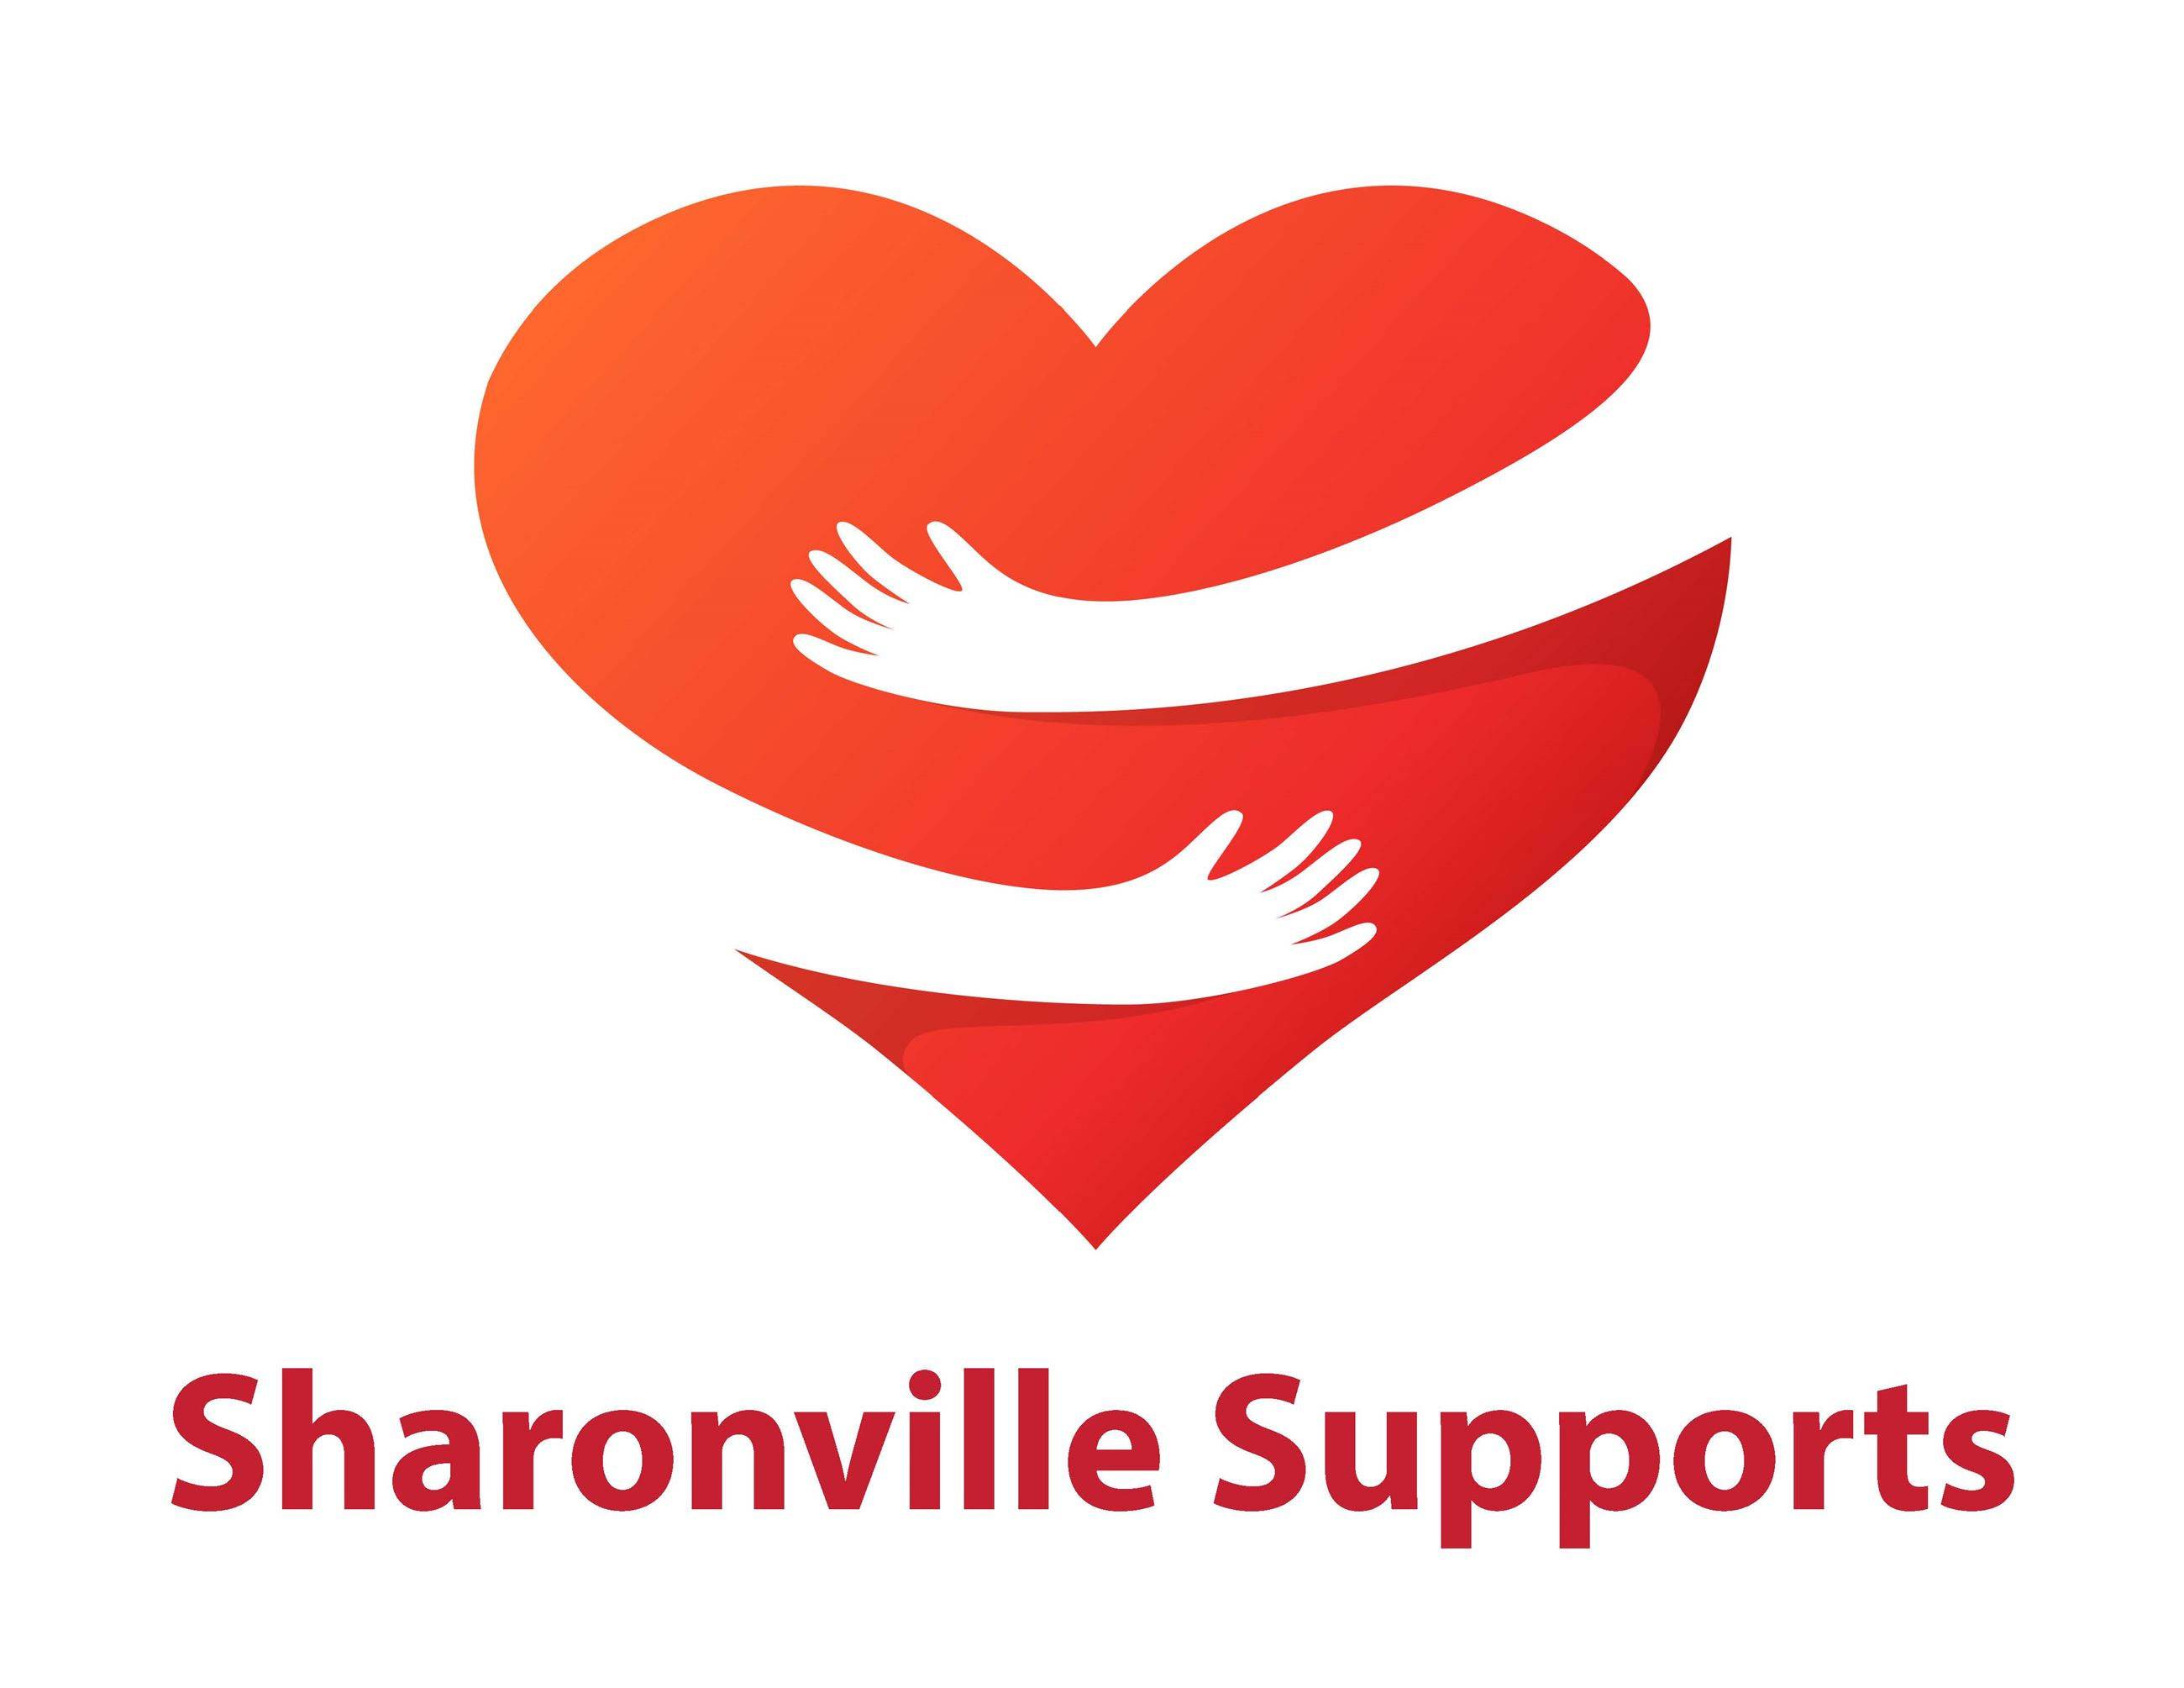 Sharonville Supports (2)